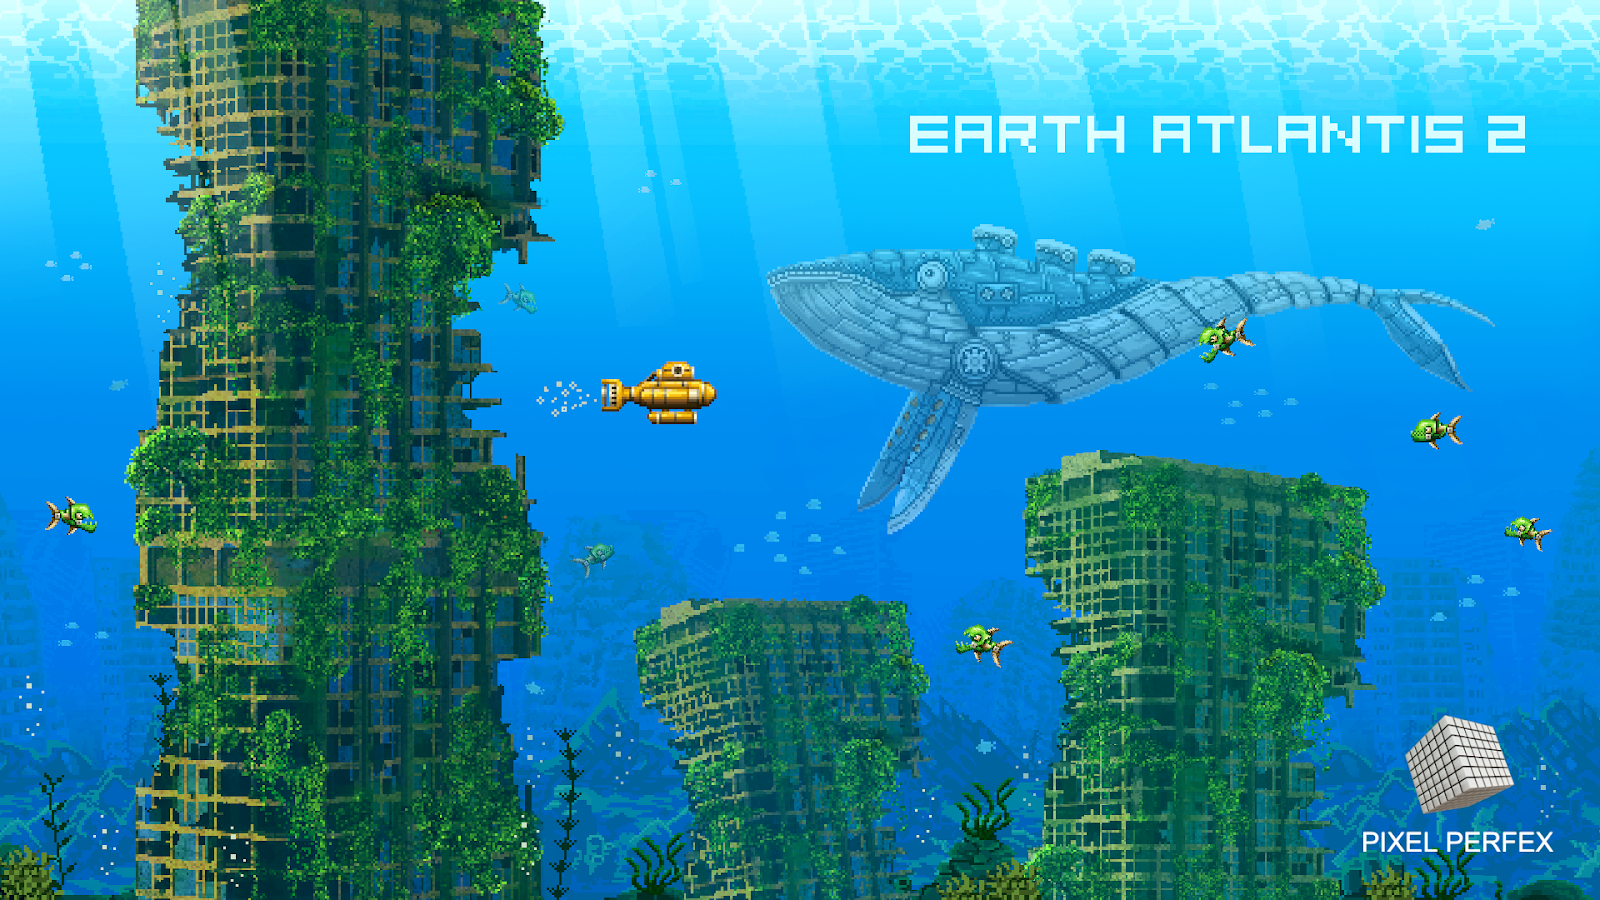 'Earth Atlantis 2' Is a Sequel to the Excellent 'Earth Atlantis' Now in Development with a Brand New Visual Style